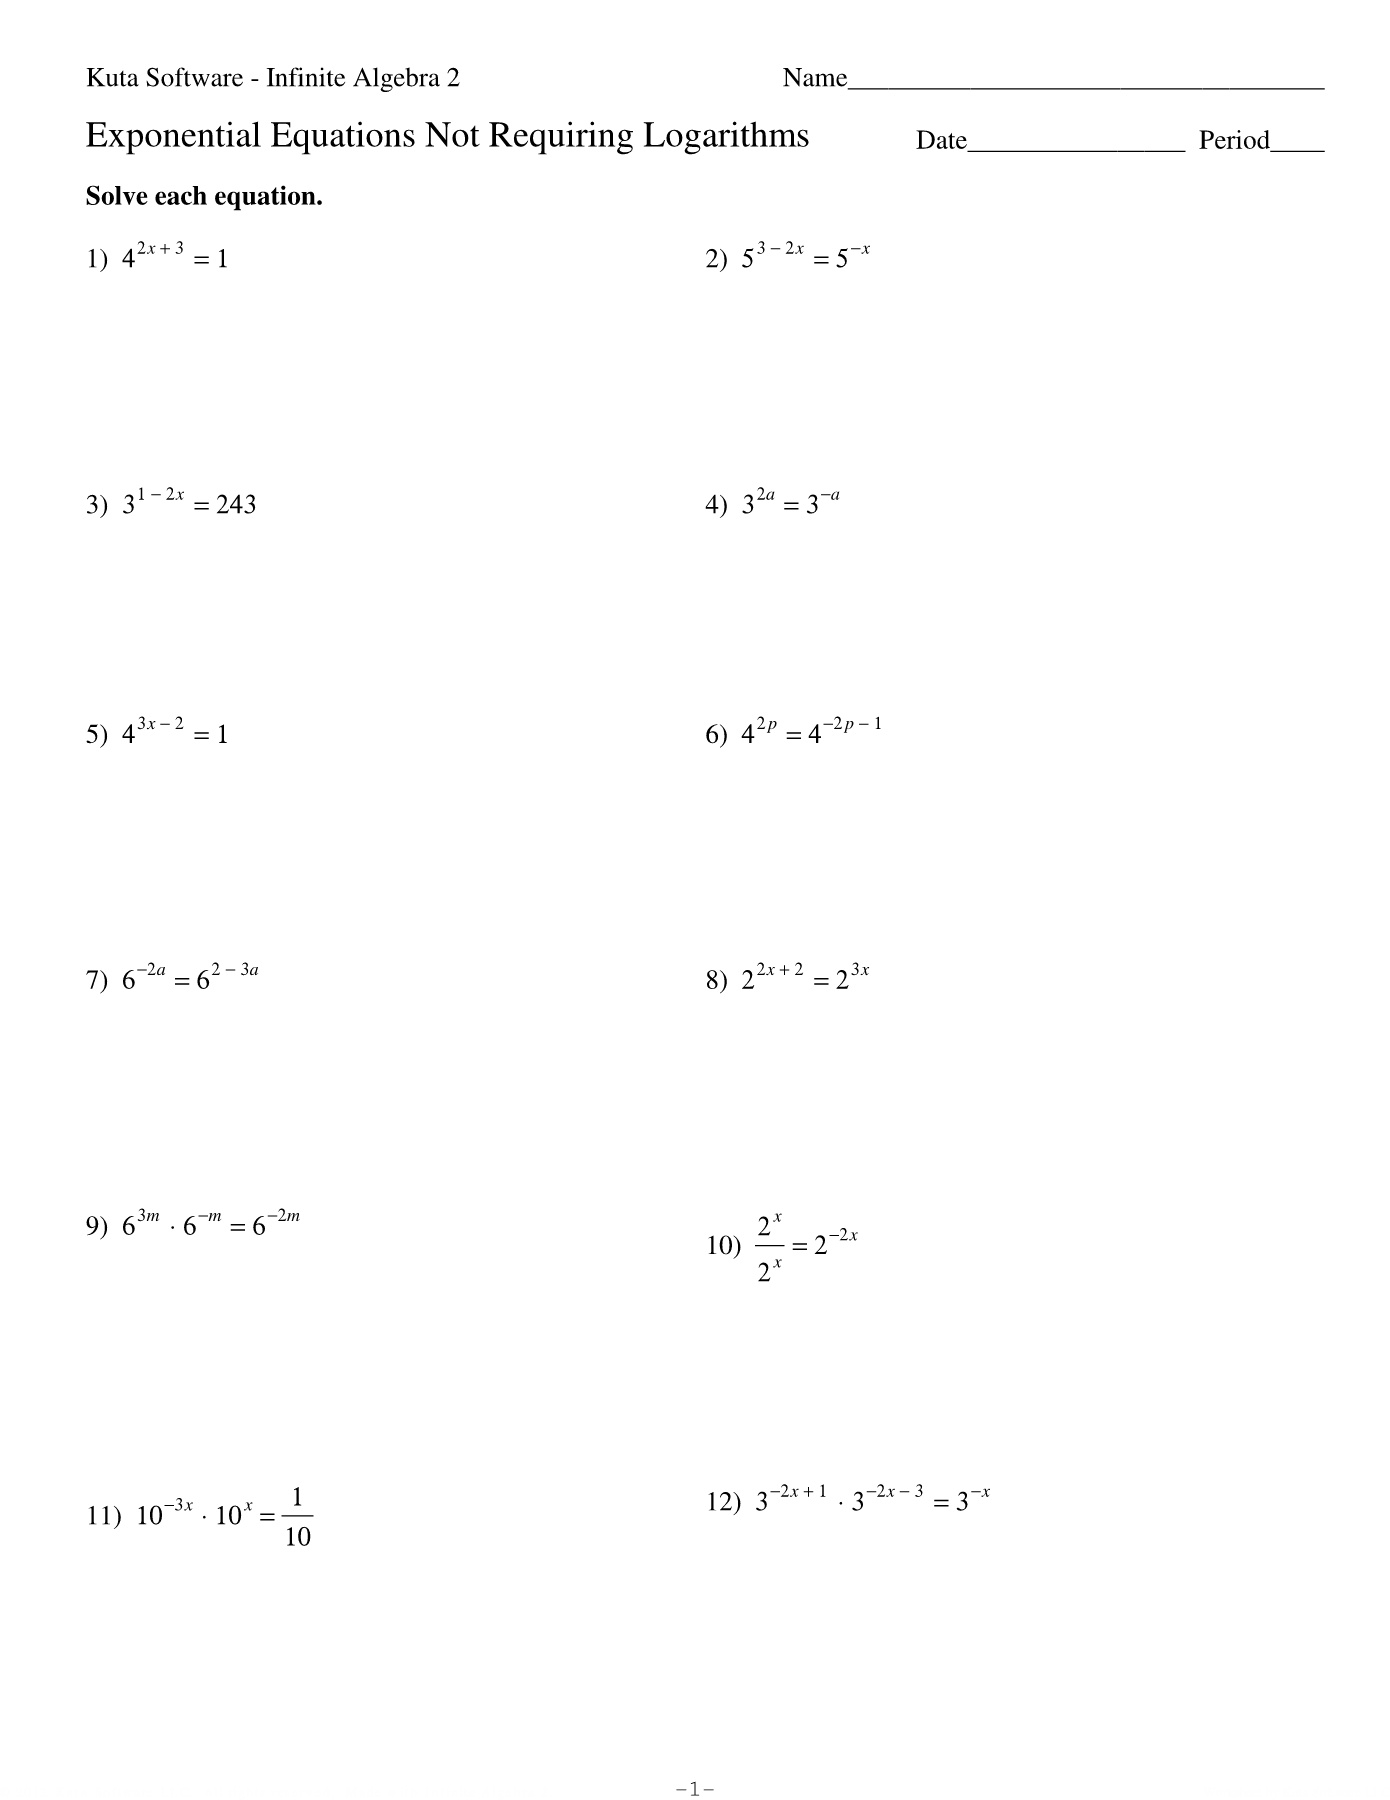 Exponential Equations Not Requiring Logarithms Practice